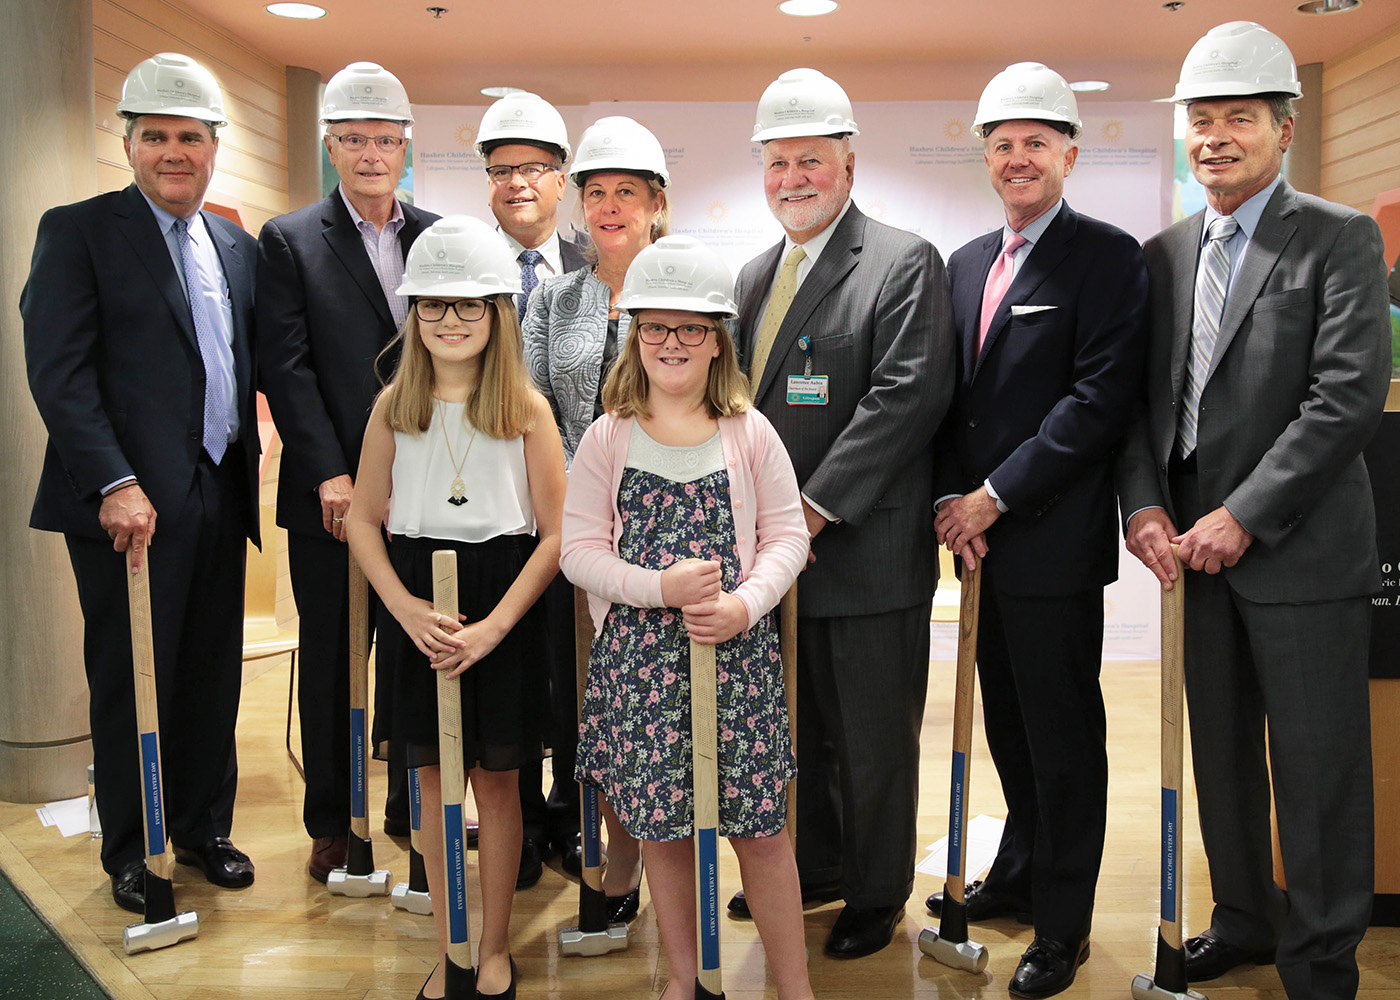 Lifespan, Hasbro and community leaders, along with essay winners, wearing hardhats for a symbolic groundbreaking